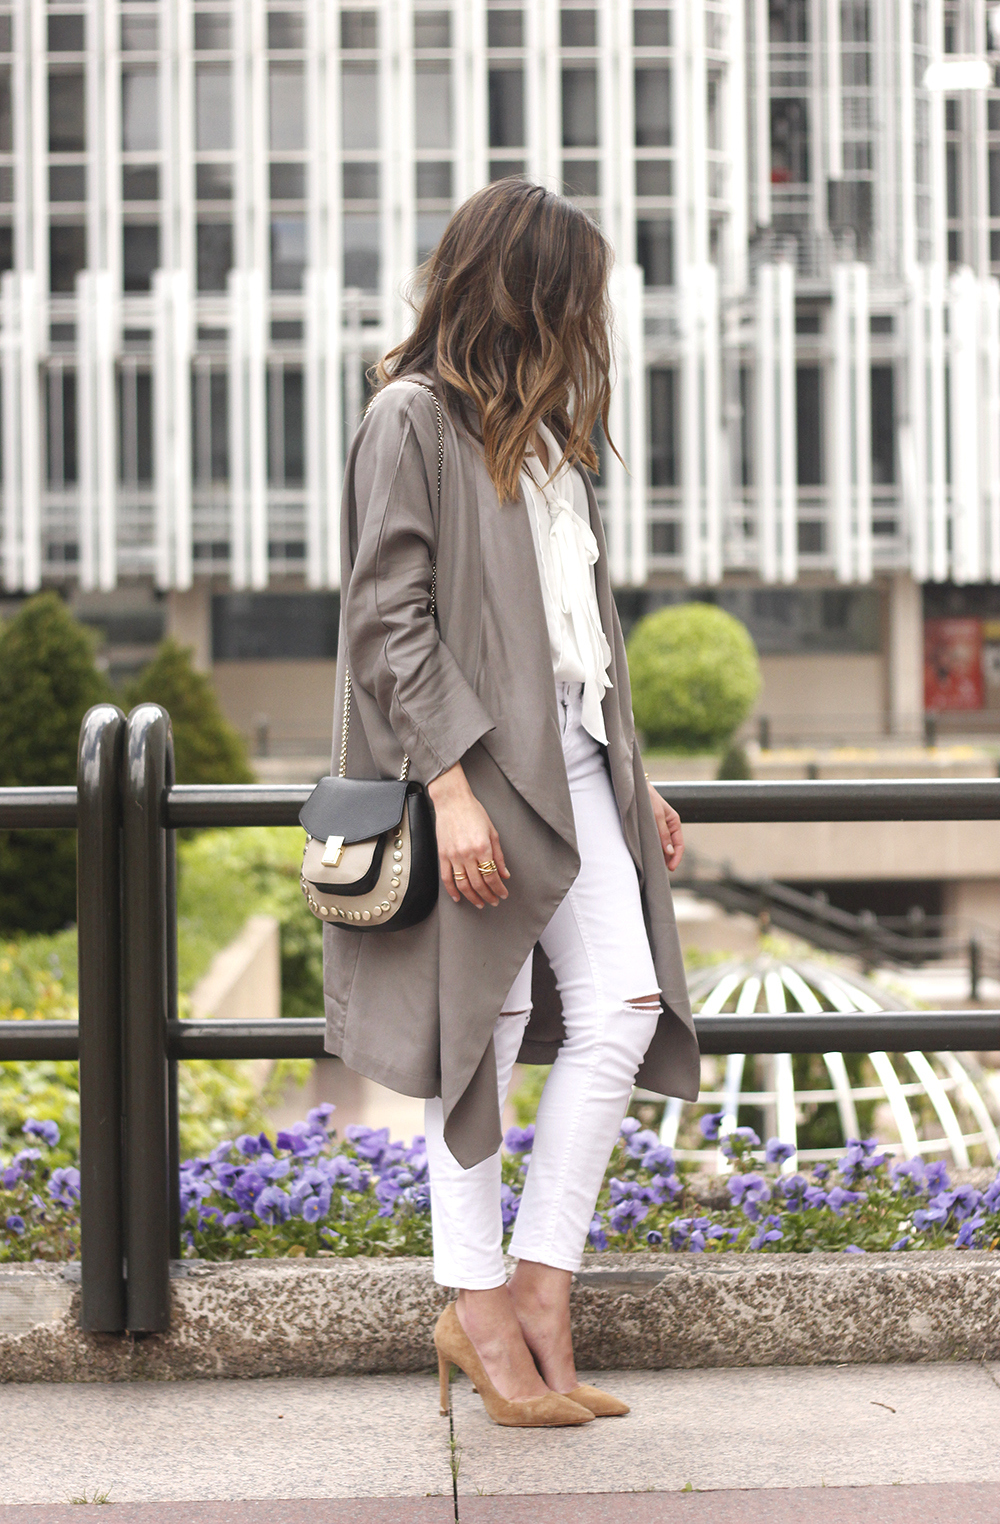 grey and white outfit trench spring streetstyle sunnies nude heels ripped jeans02